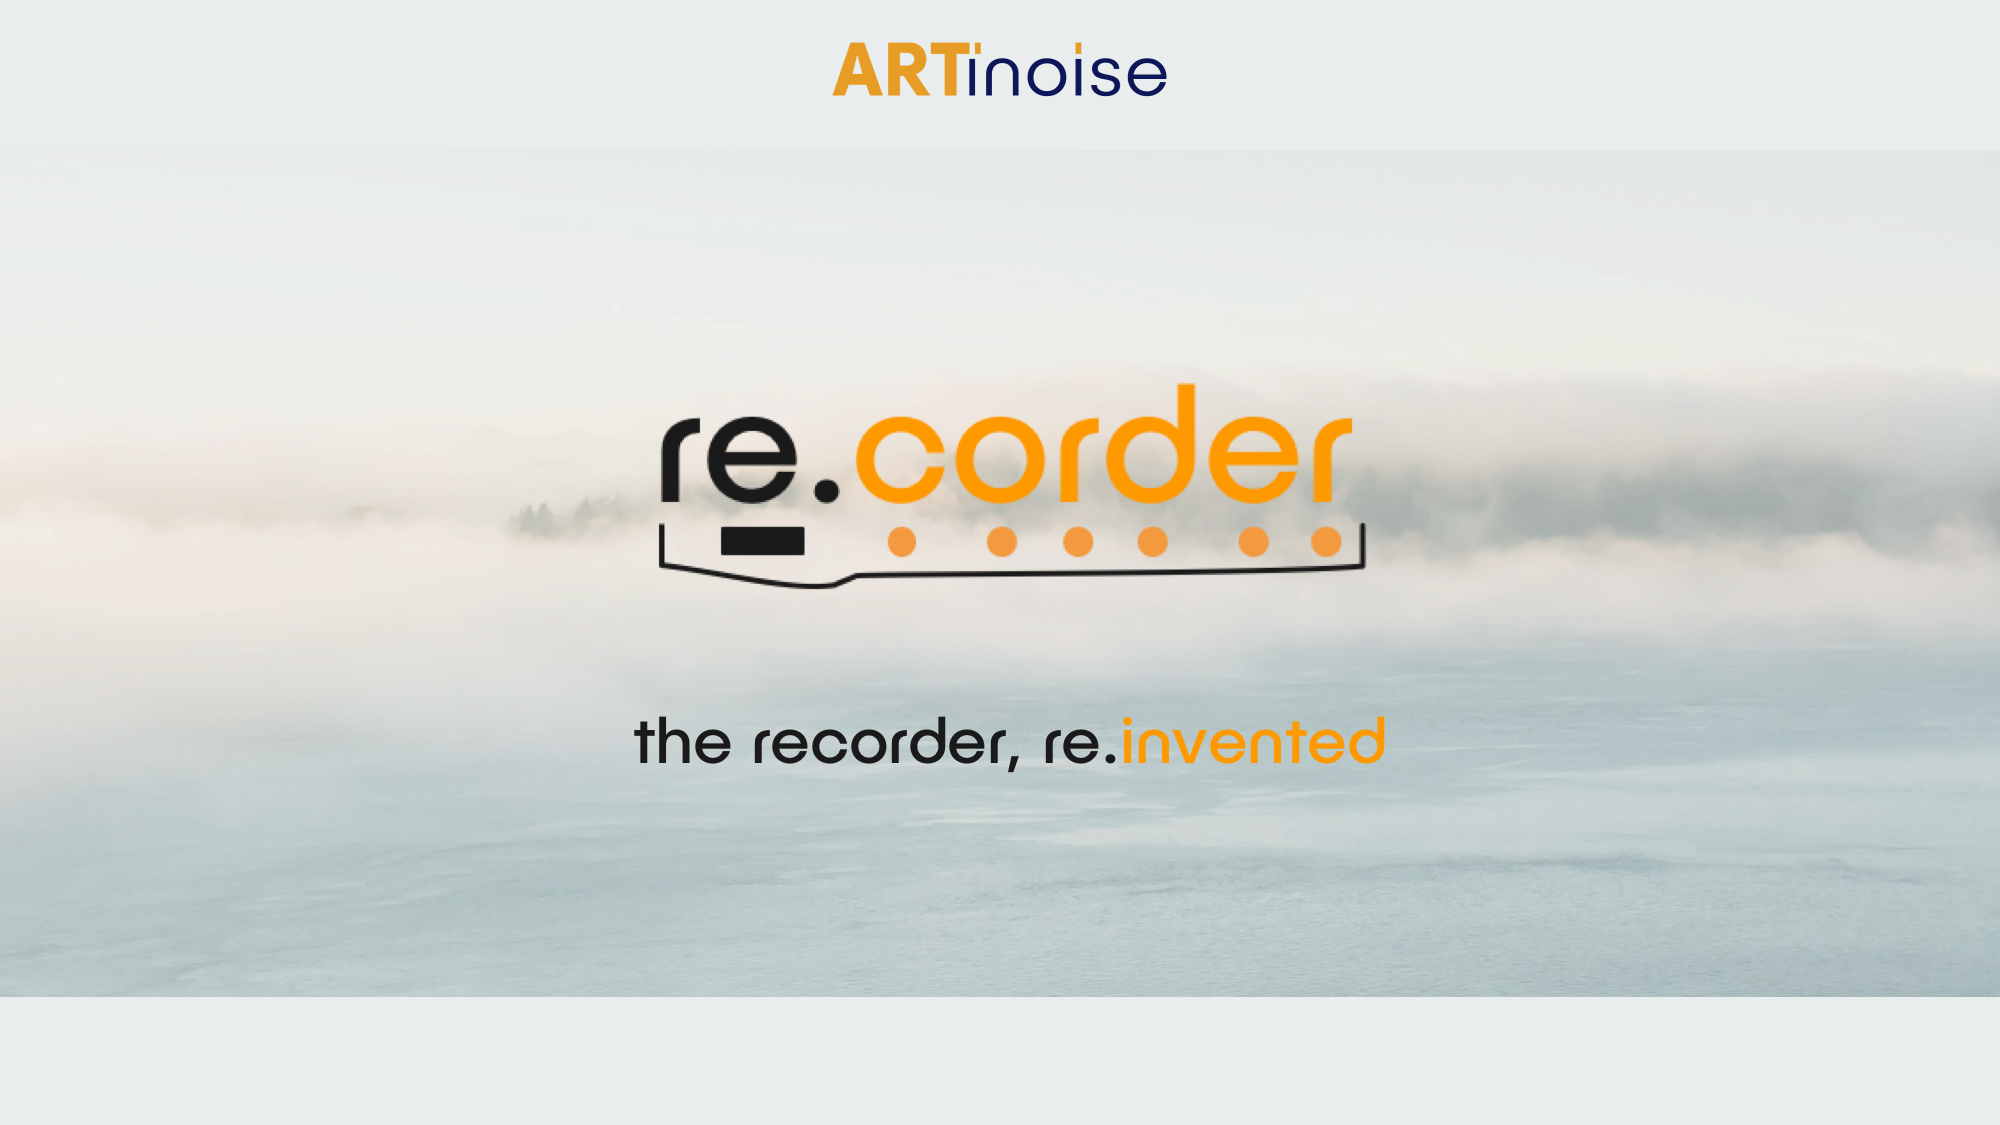 Artinoise Re.corder - the recorder reinvented